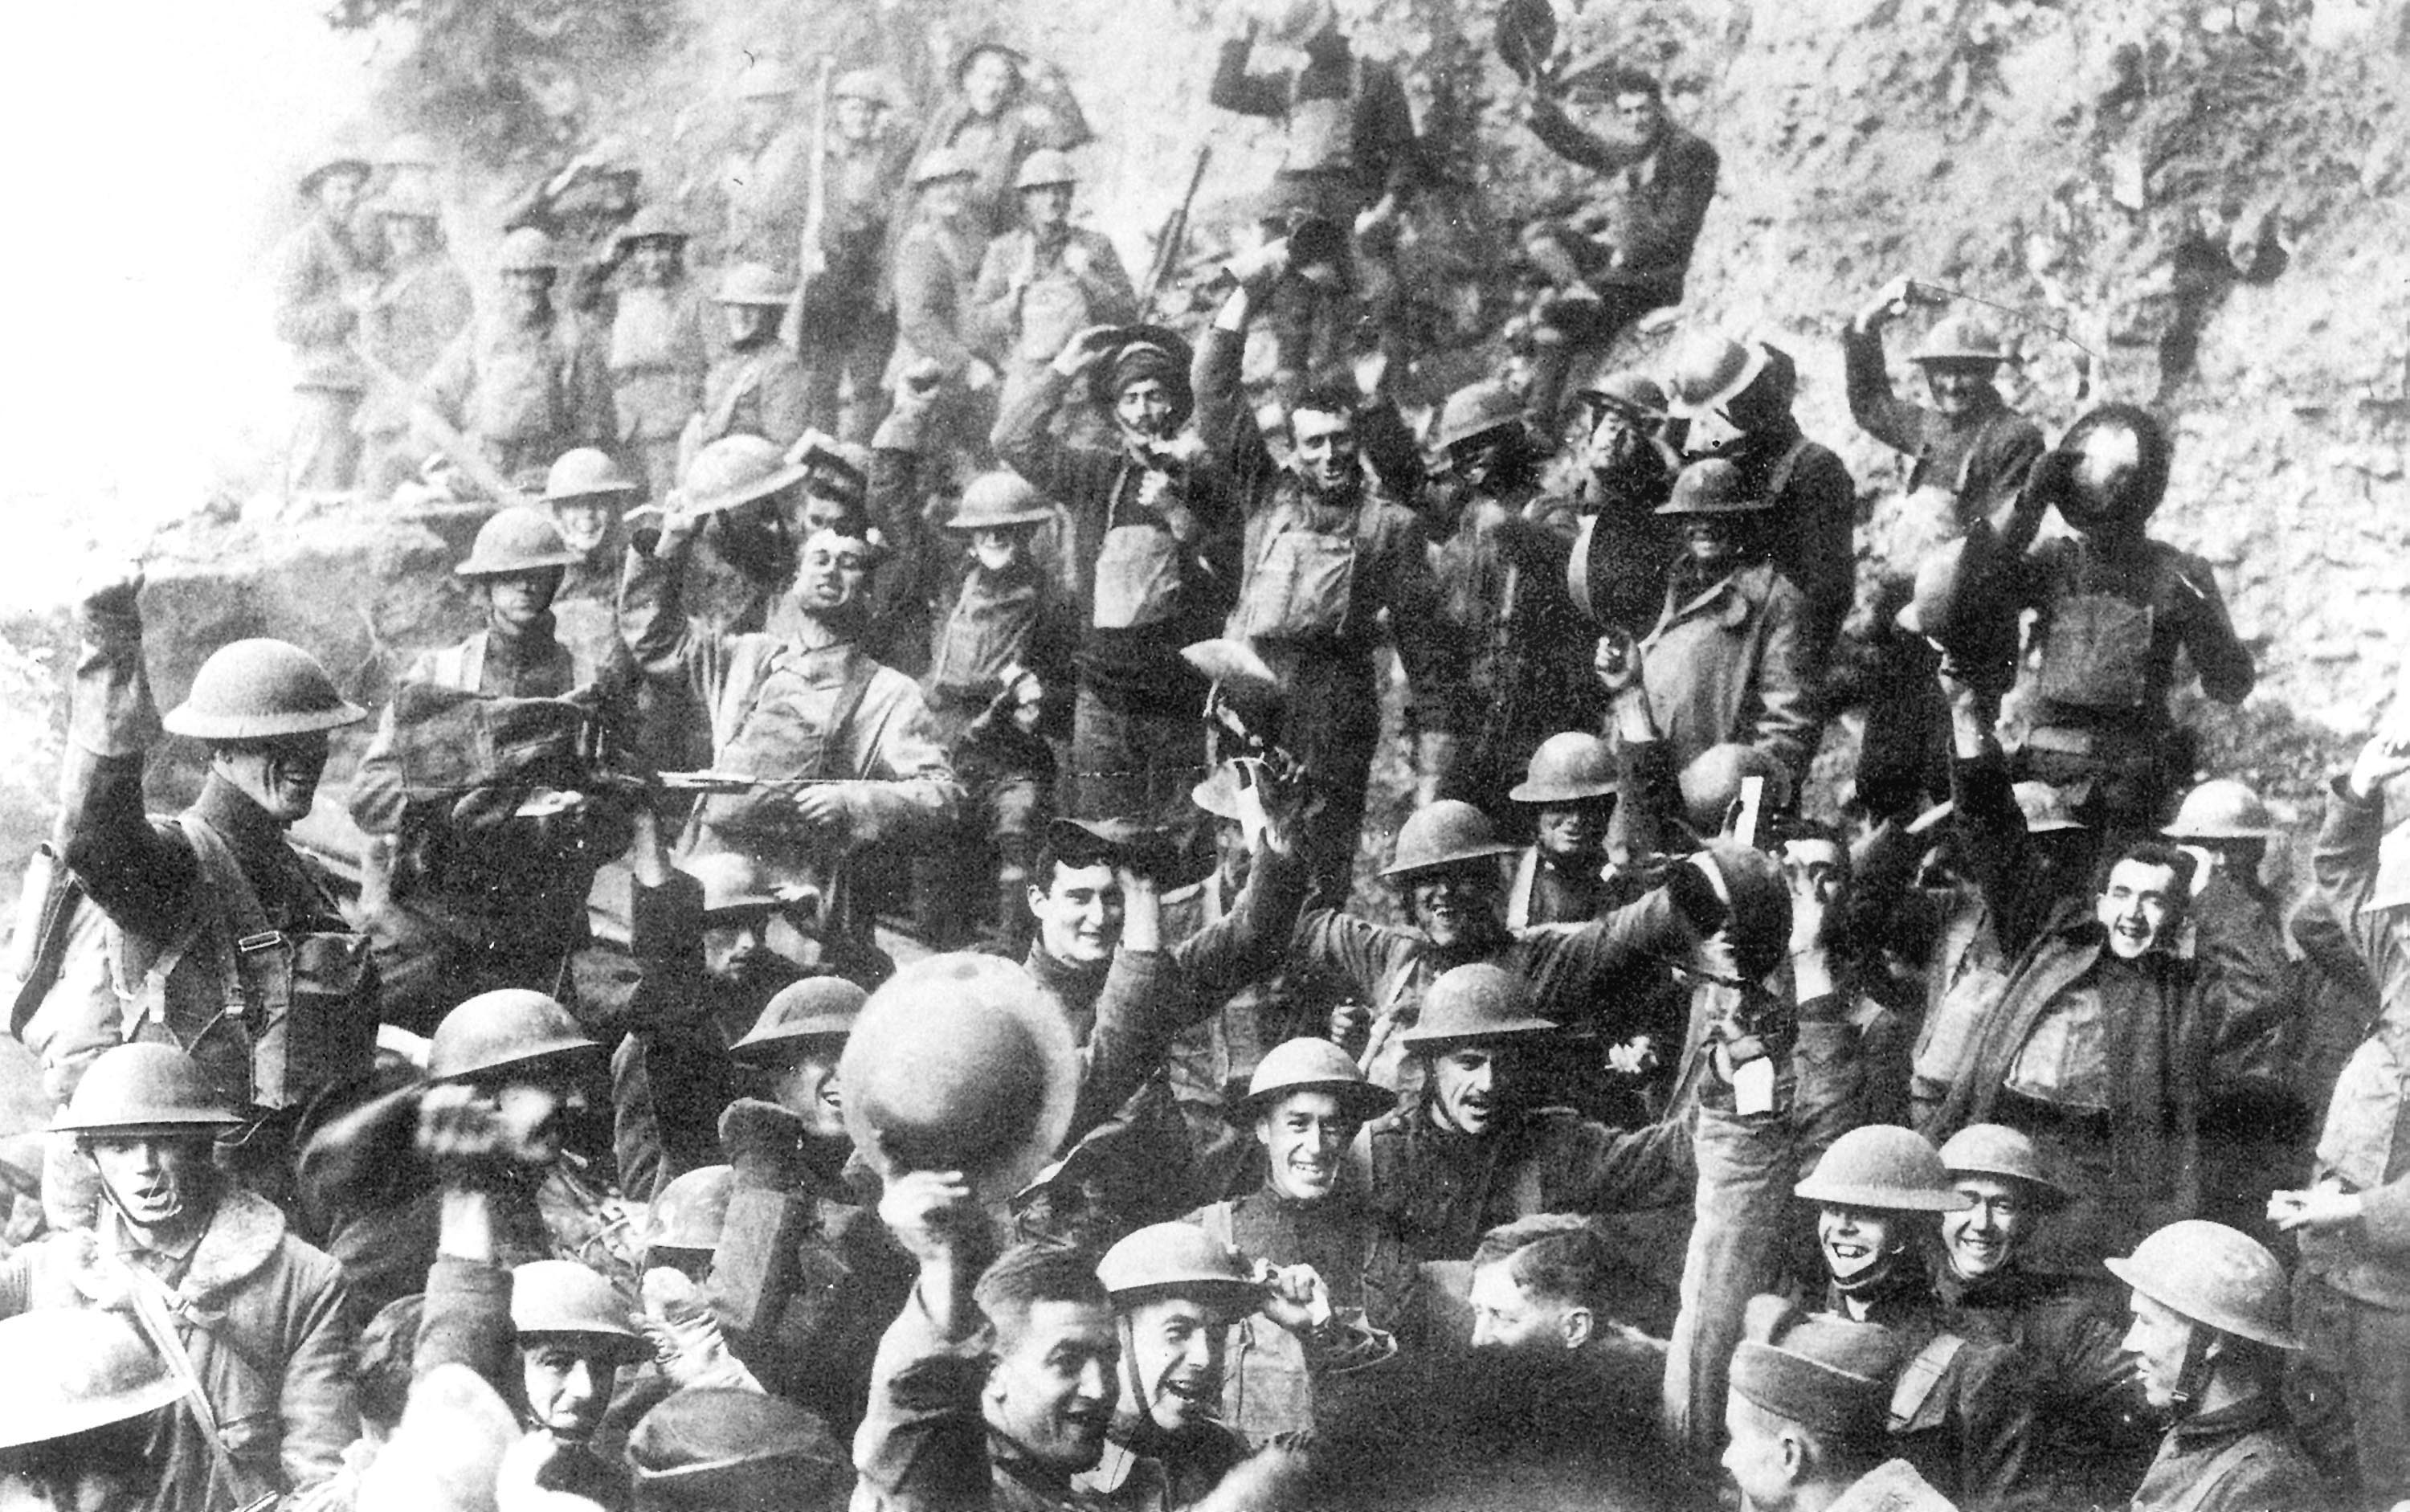 an infantry of World War 1 soldiers celebrate the armistice.